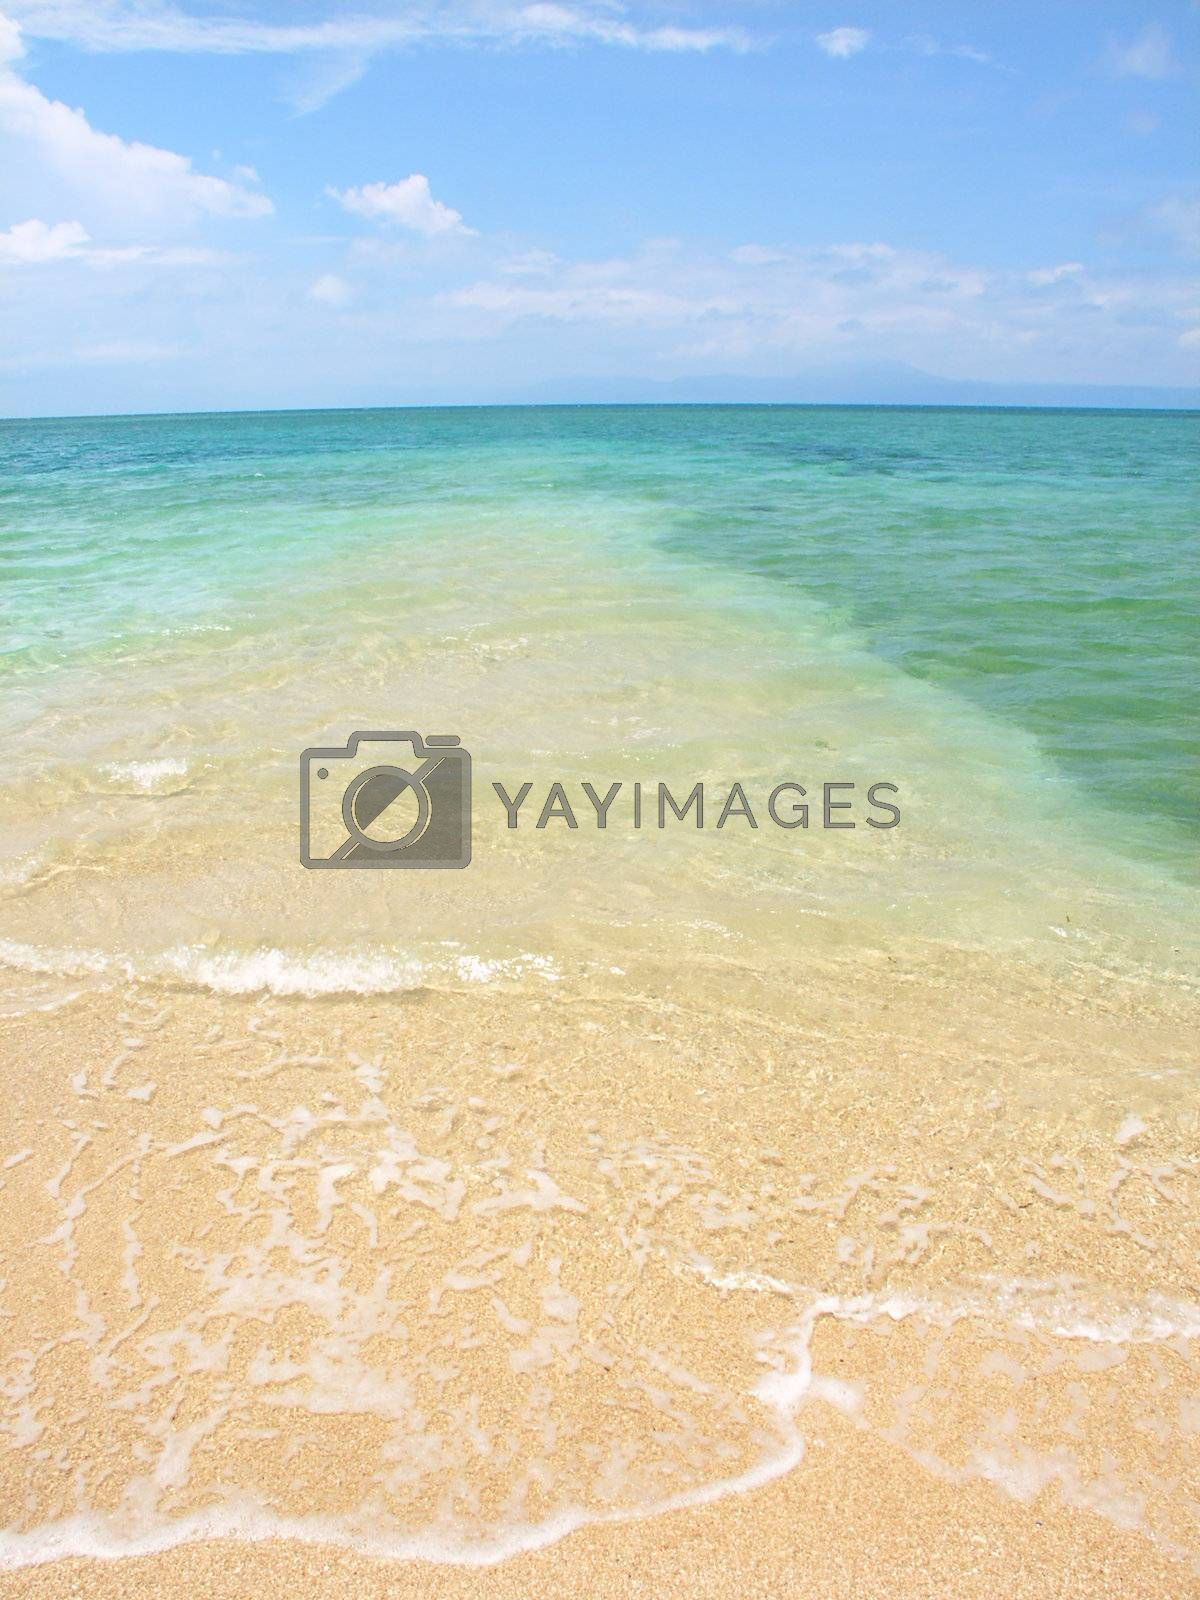 Royalty free image of The Low Isles - Queensland Australia by Wirepec